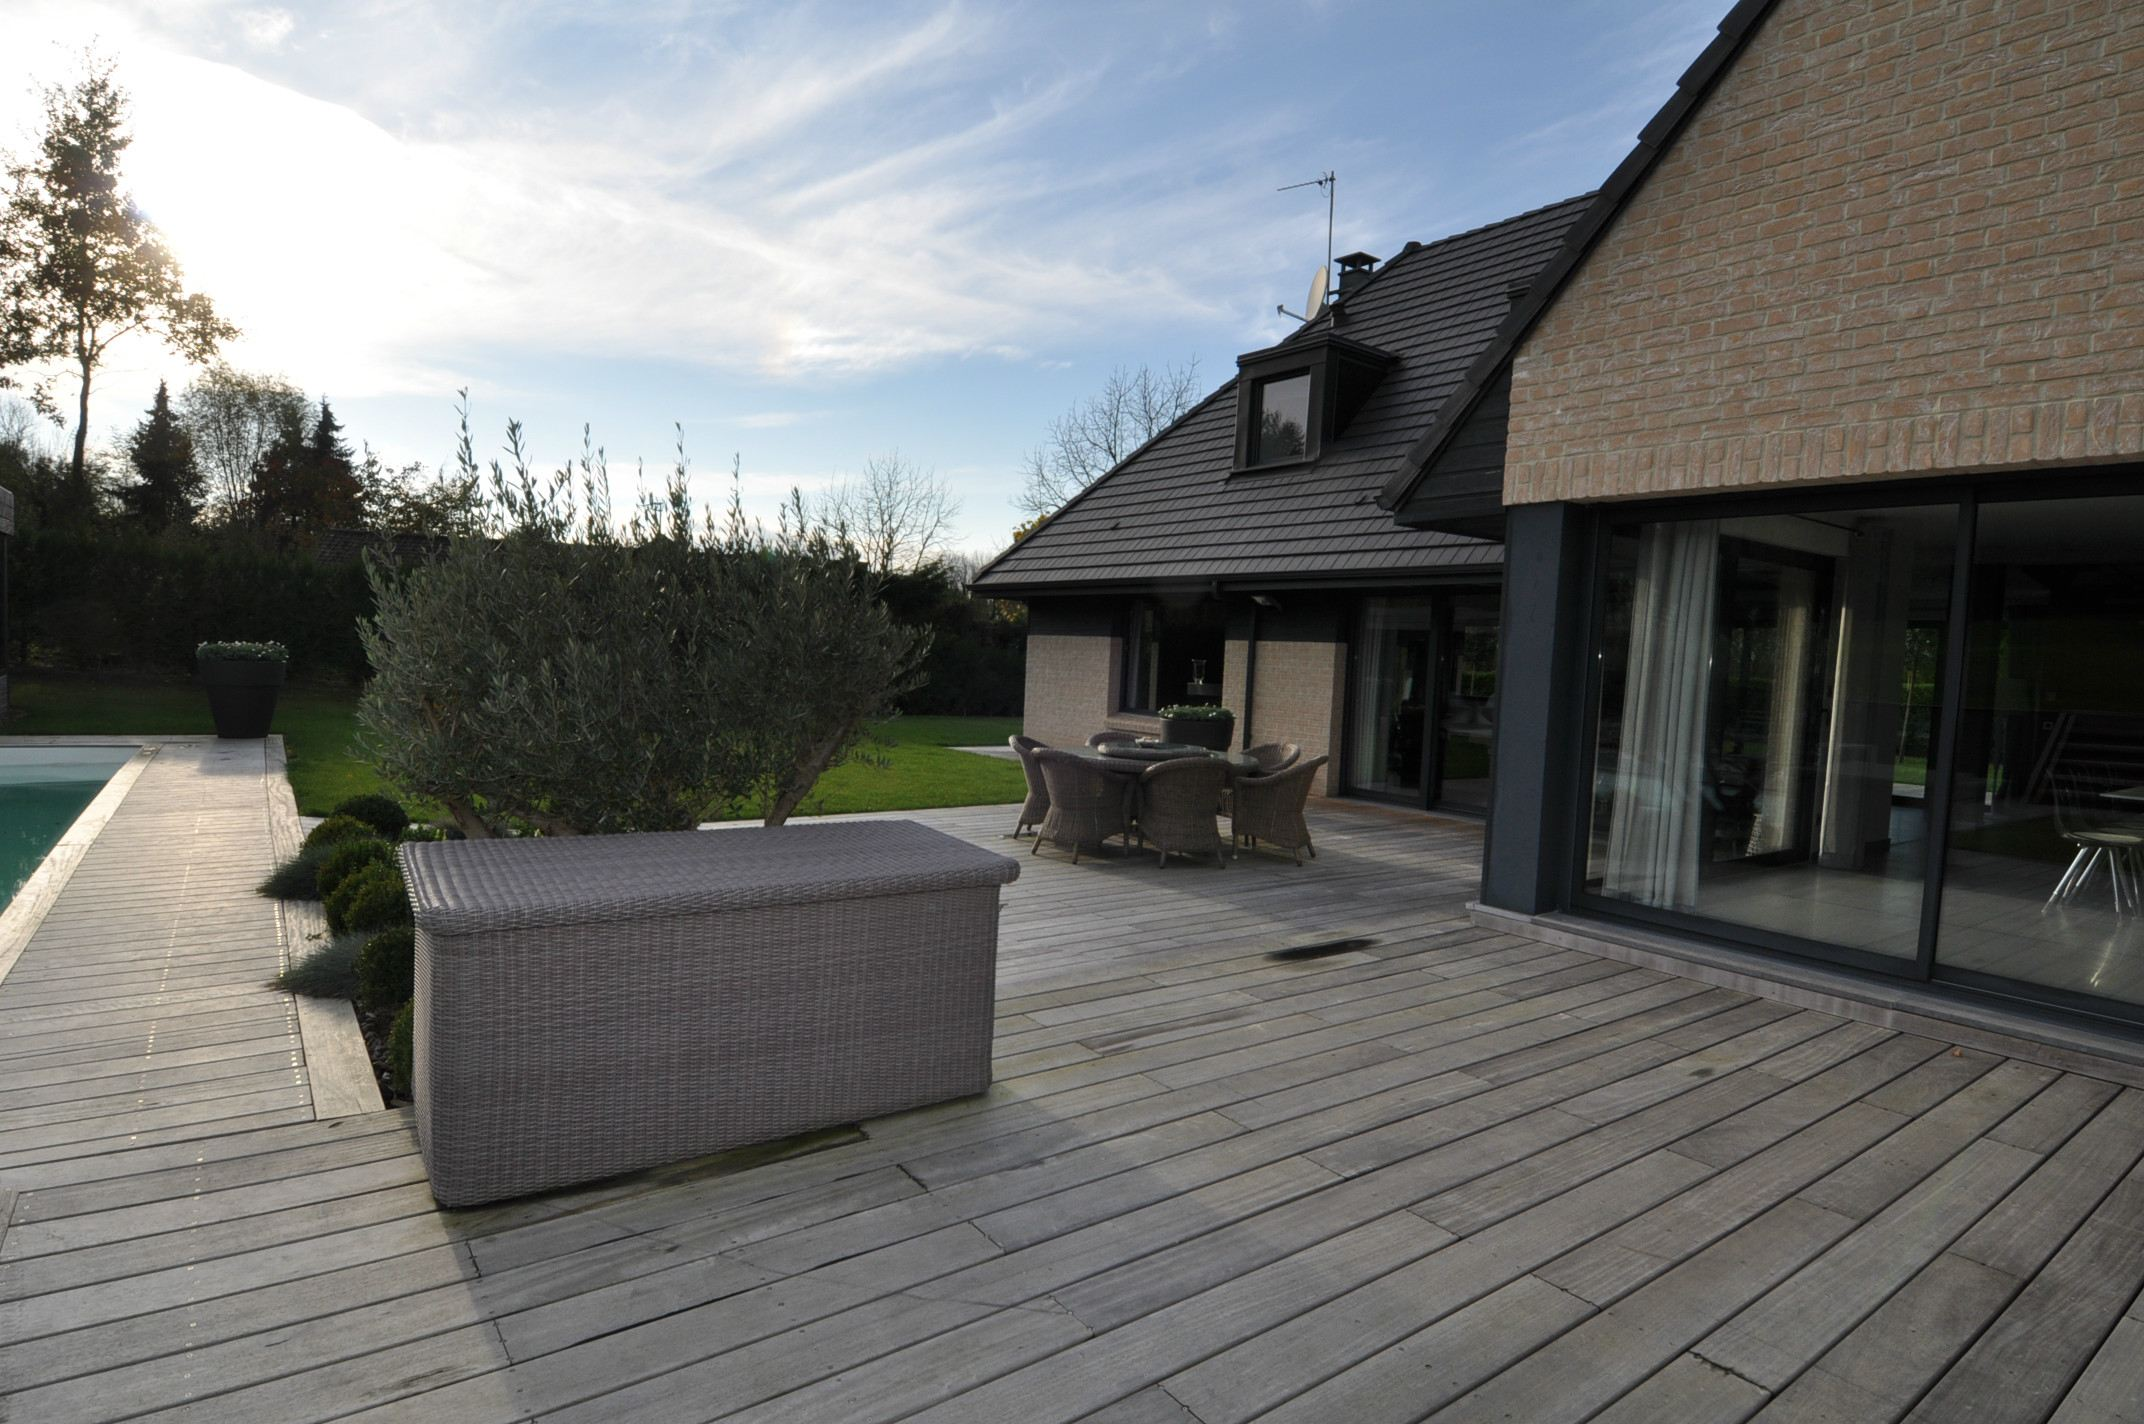 Property For Sale at THE HEART OF WEPPES, contemporary family villa 350 m2. 5 beds. Pool